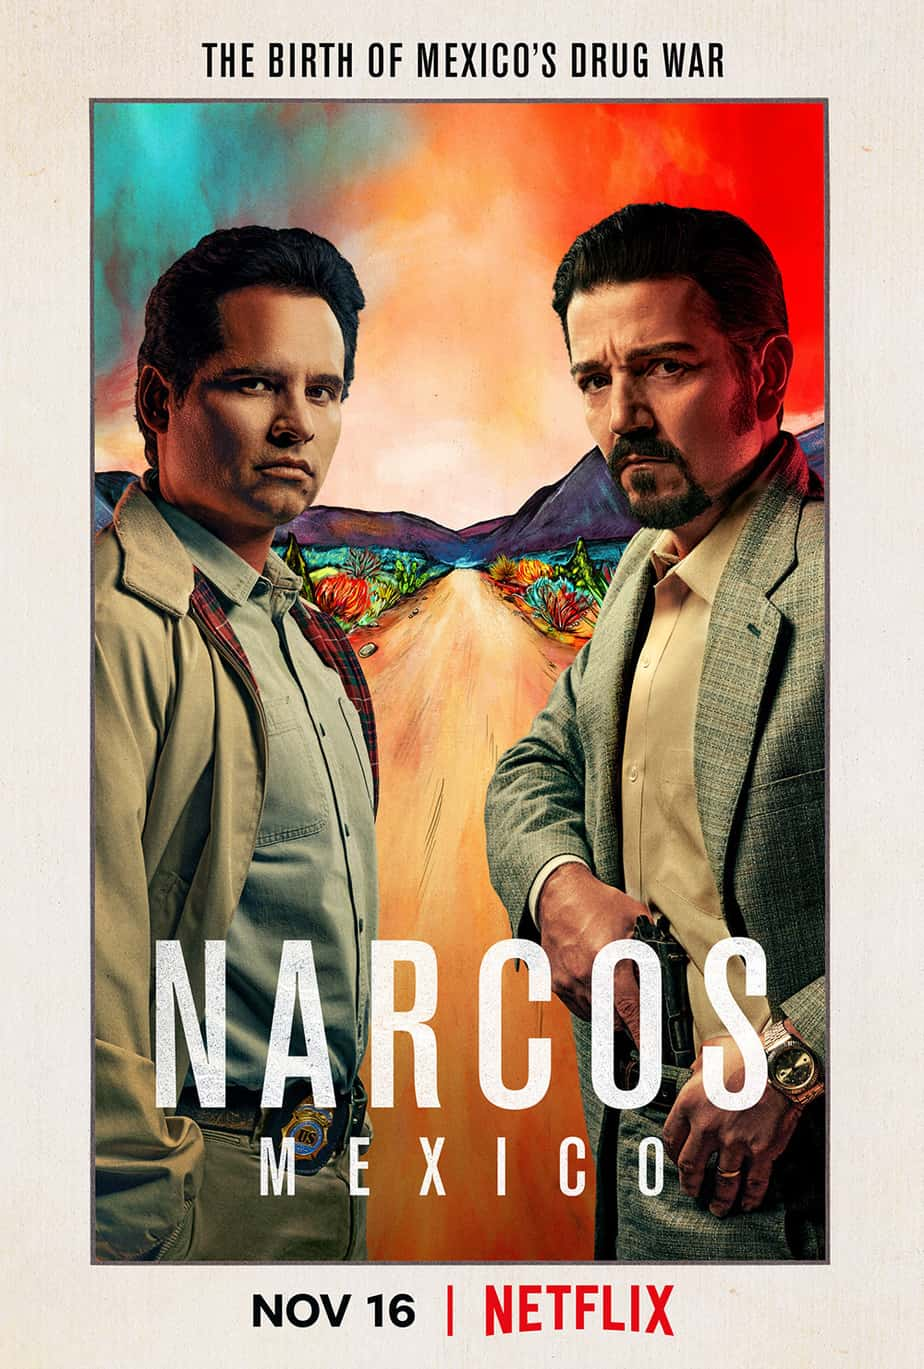 The first official trailer of Narcos: Mexico is here and it is amazing